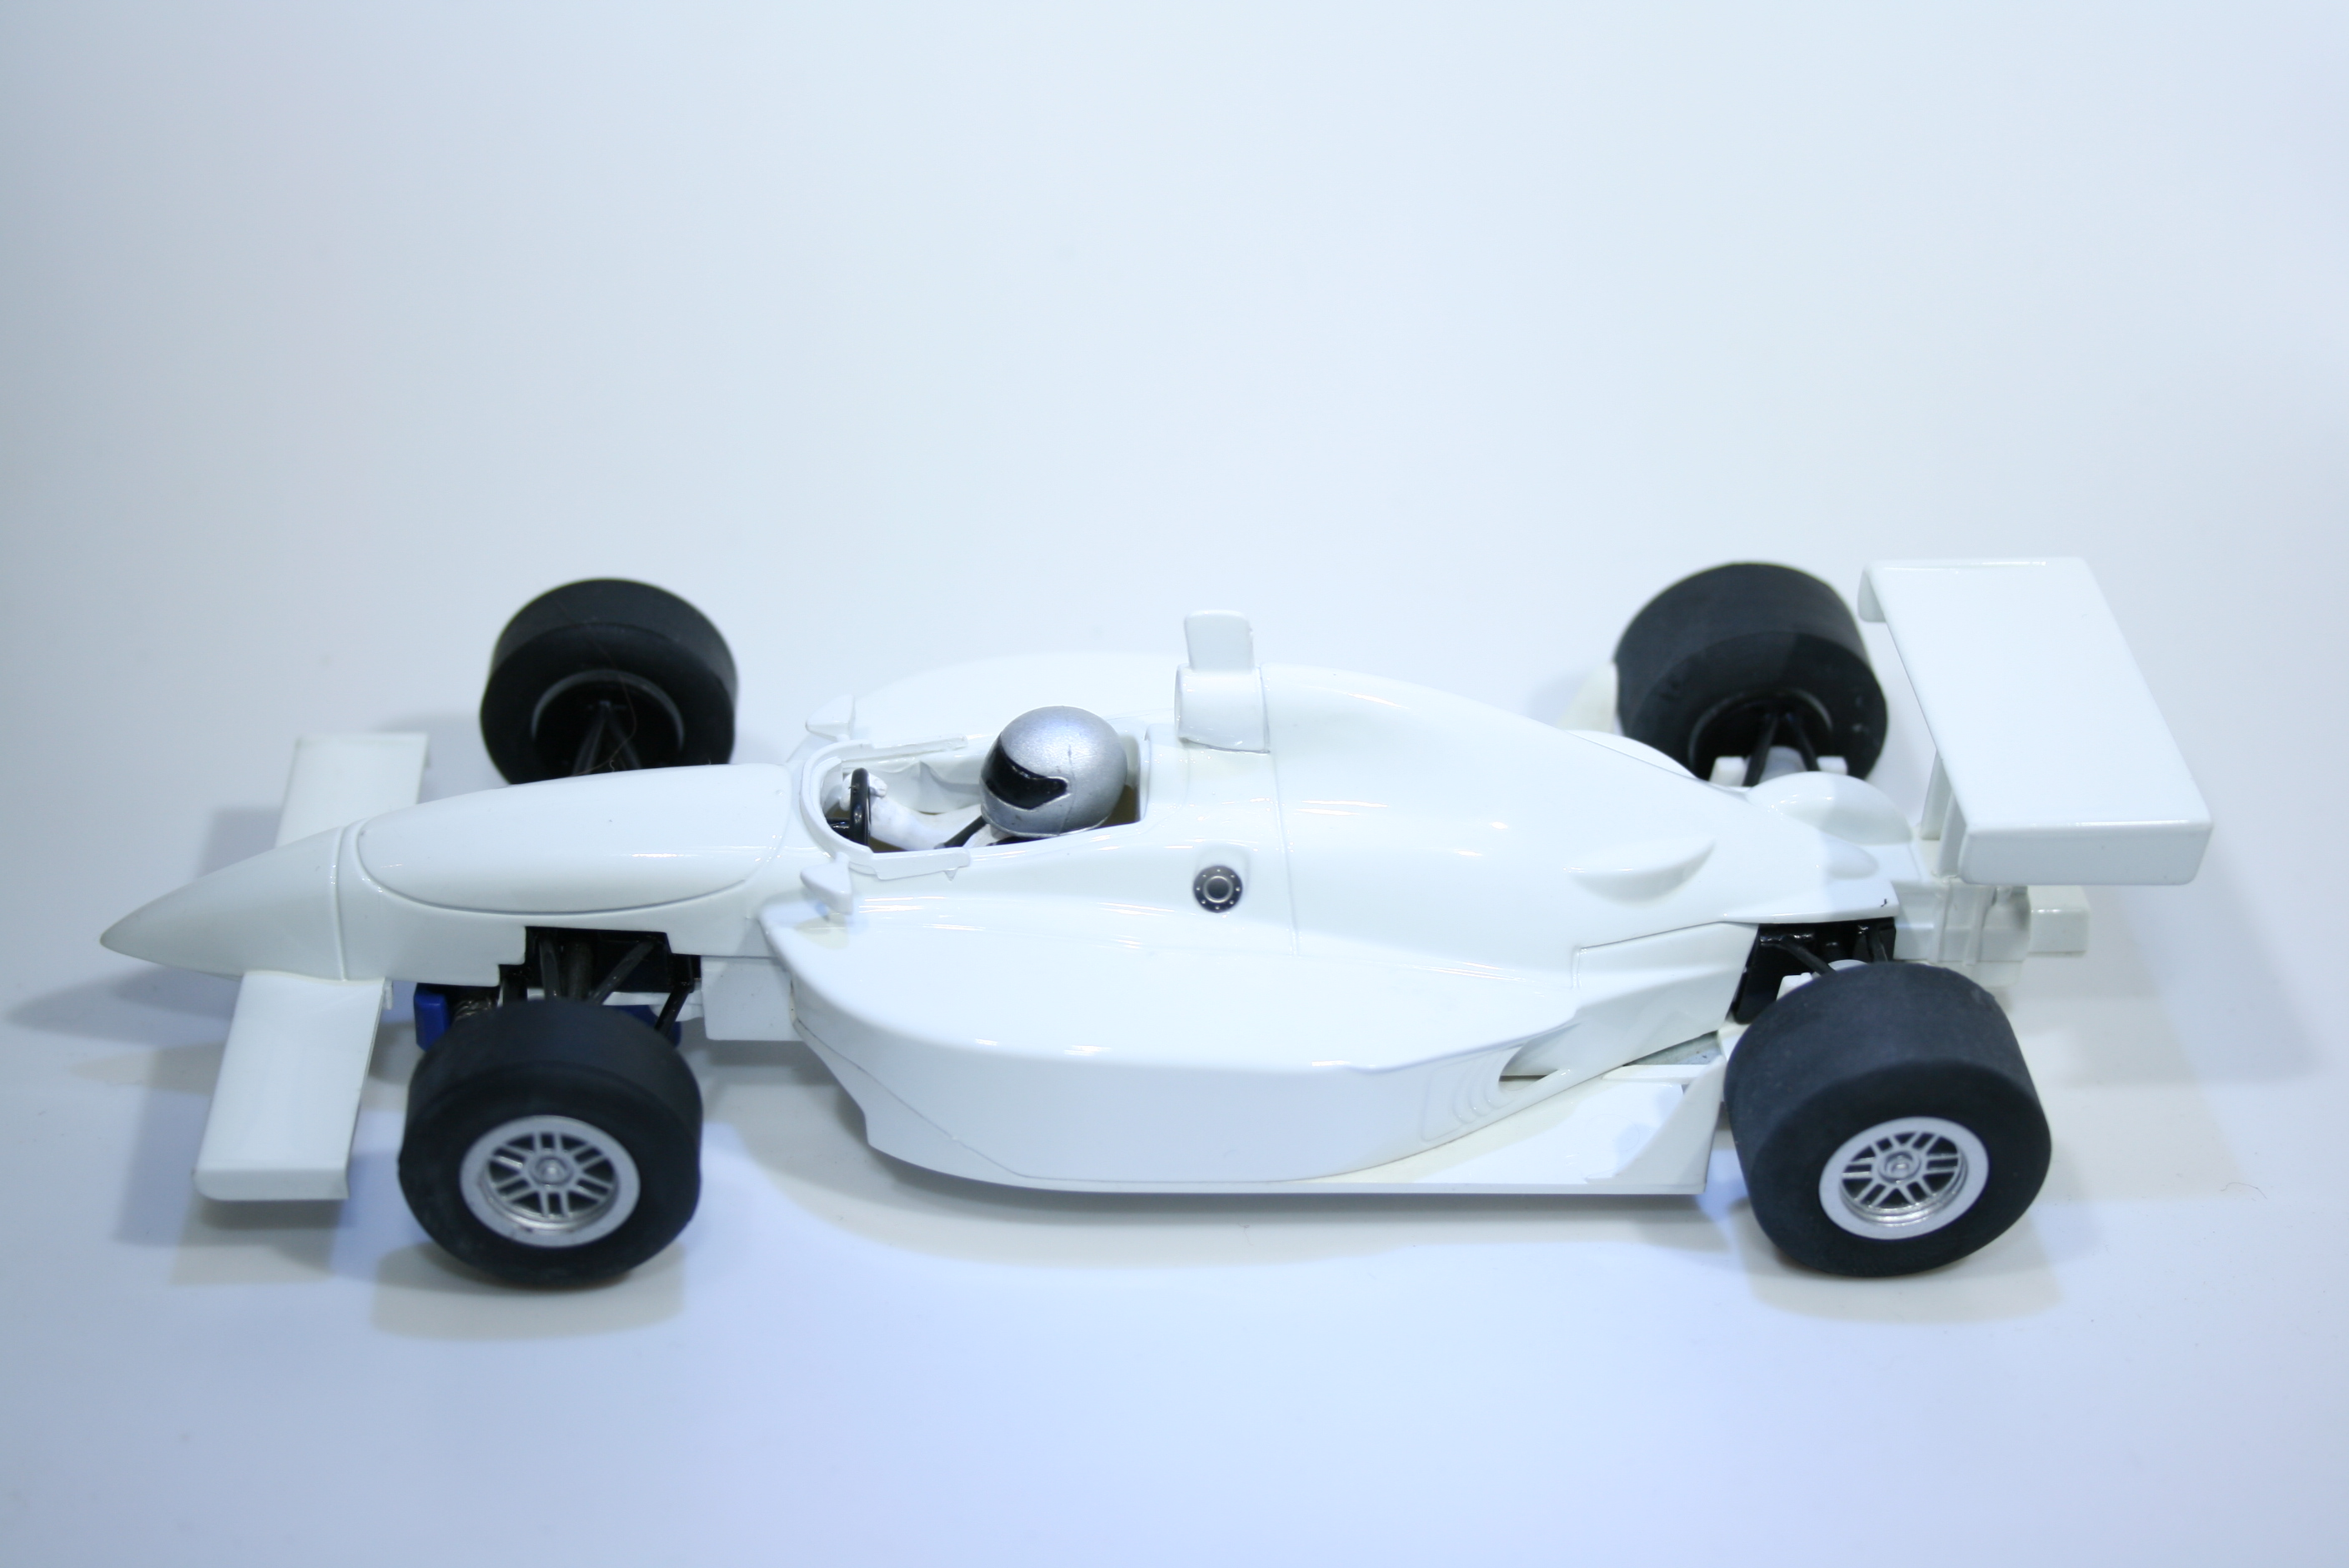 402 Dallara Scalextric C2548 2003